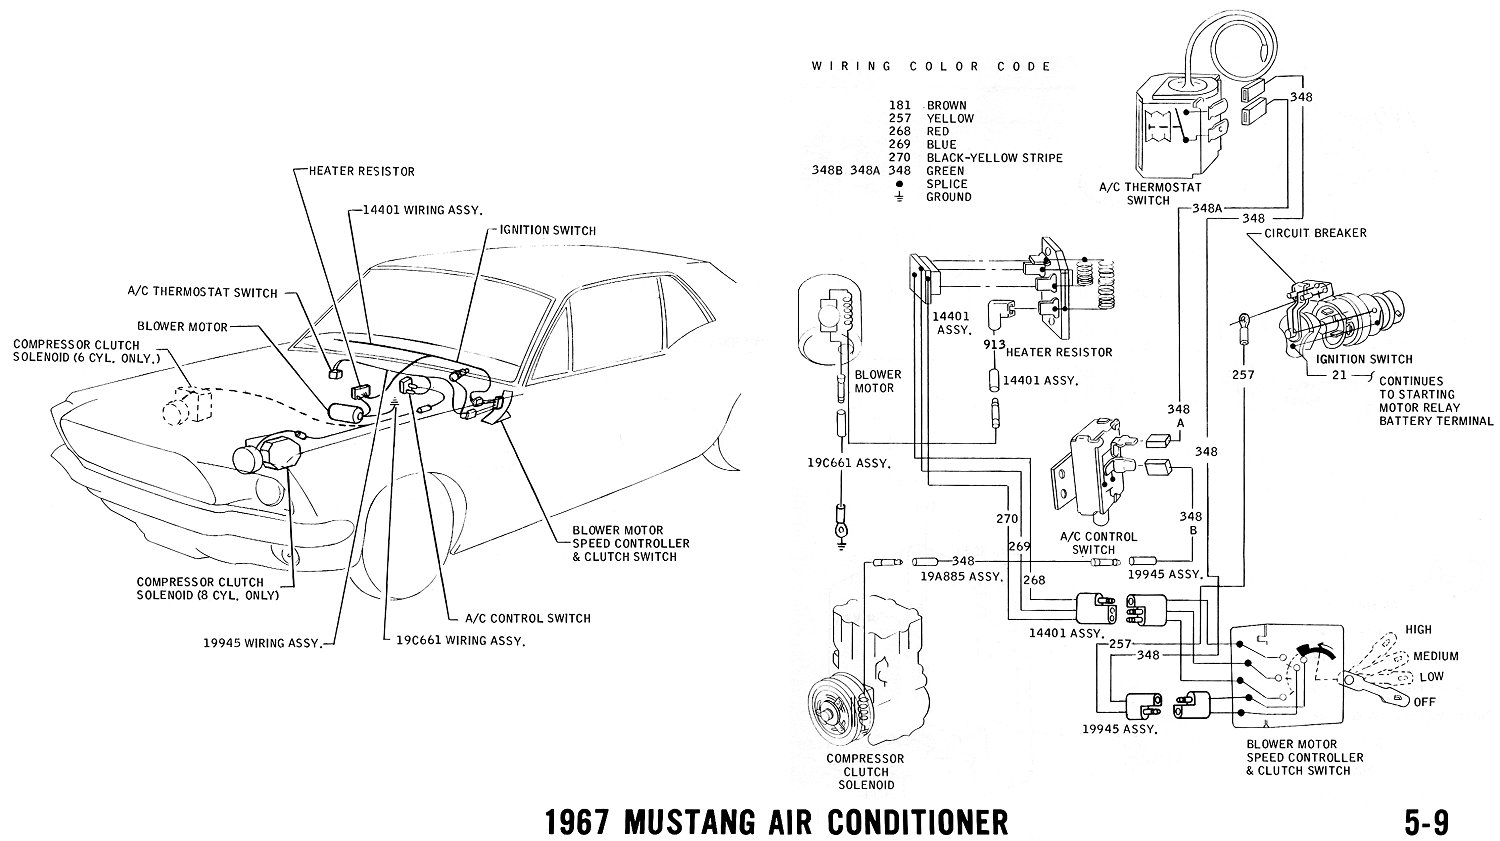 69 Mustang Wiring Diagram Motorhome Battery Isolator 3967 Renovation Project Great Charts From Average